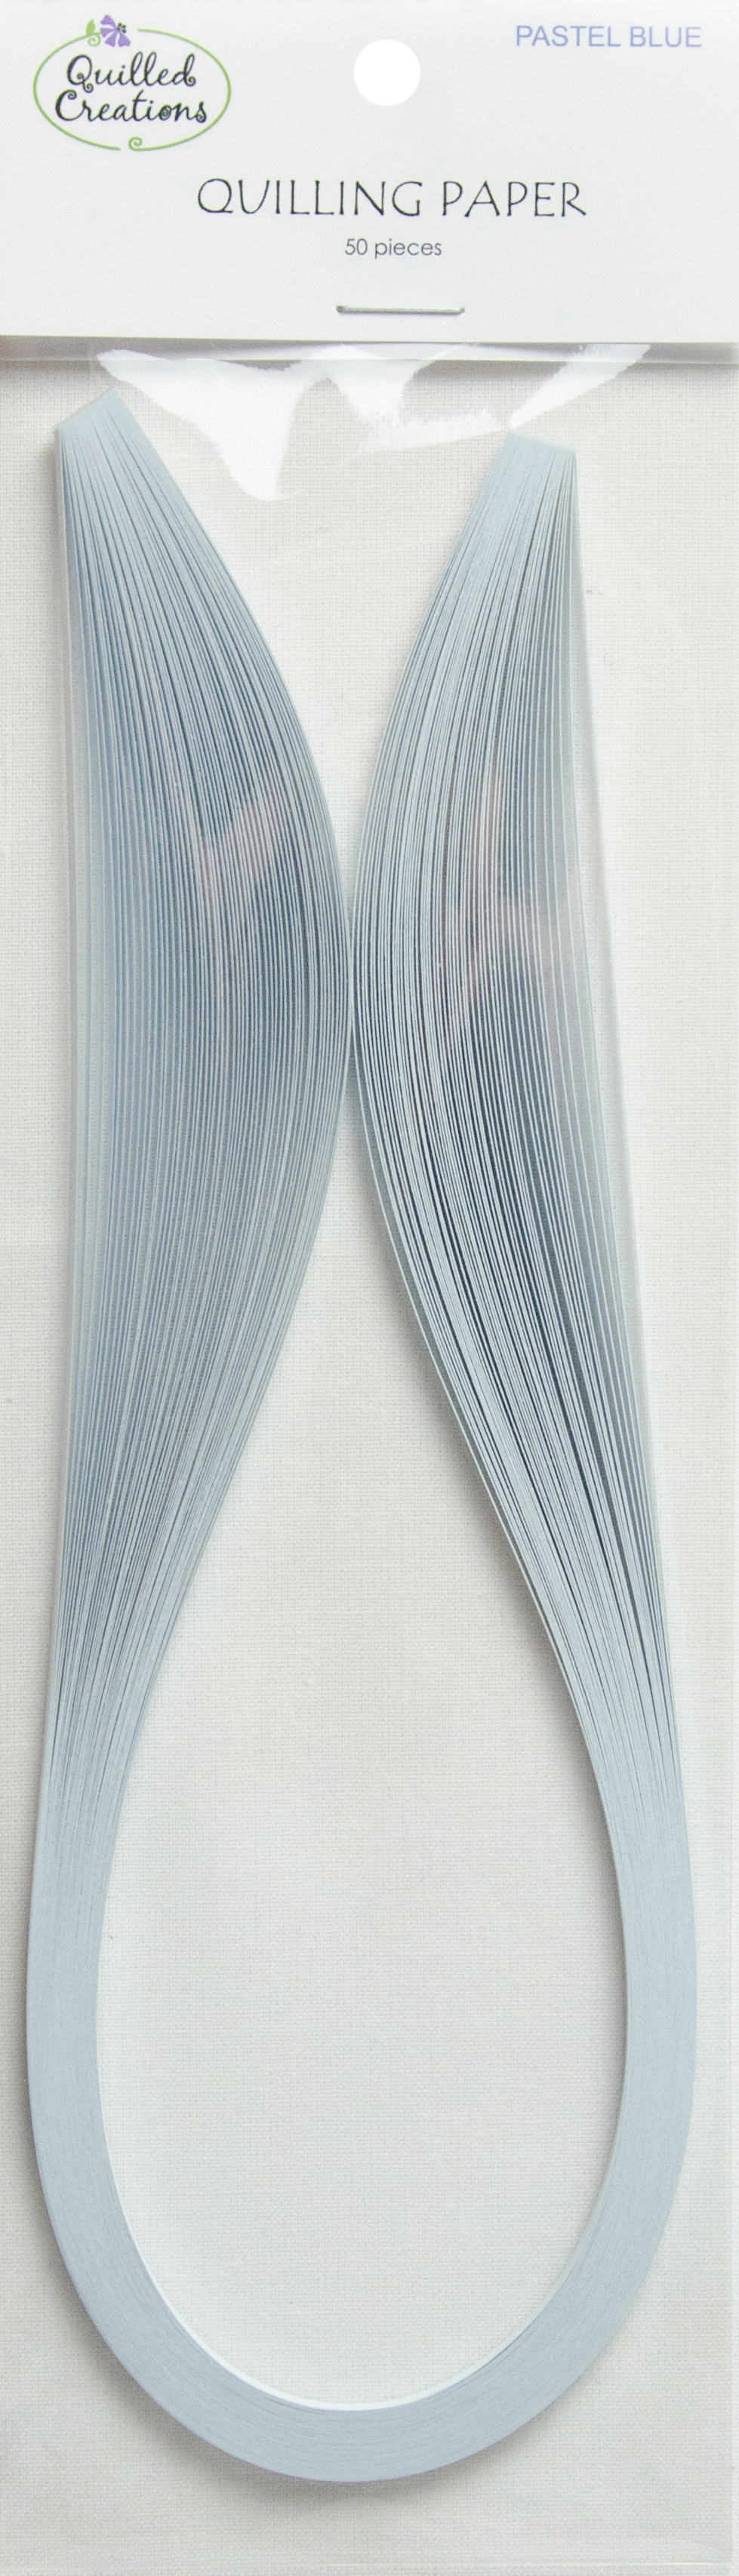 Quilled Creations Quilling Paper .25 50/Pkg-Pastel Blue